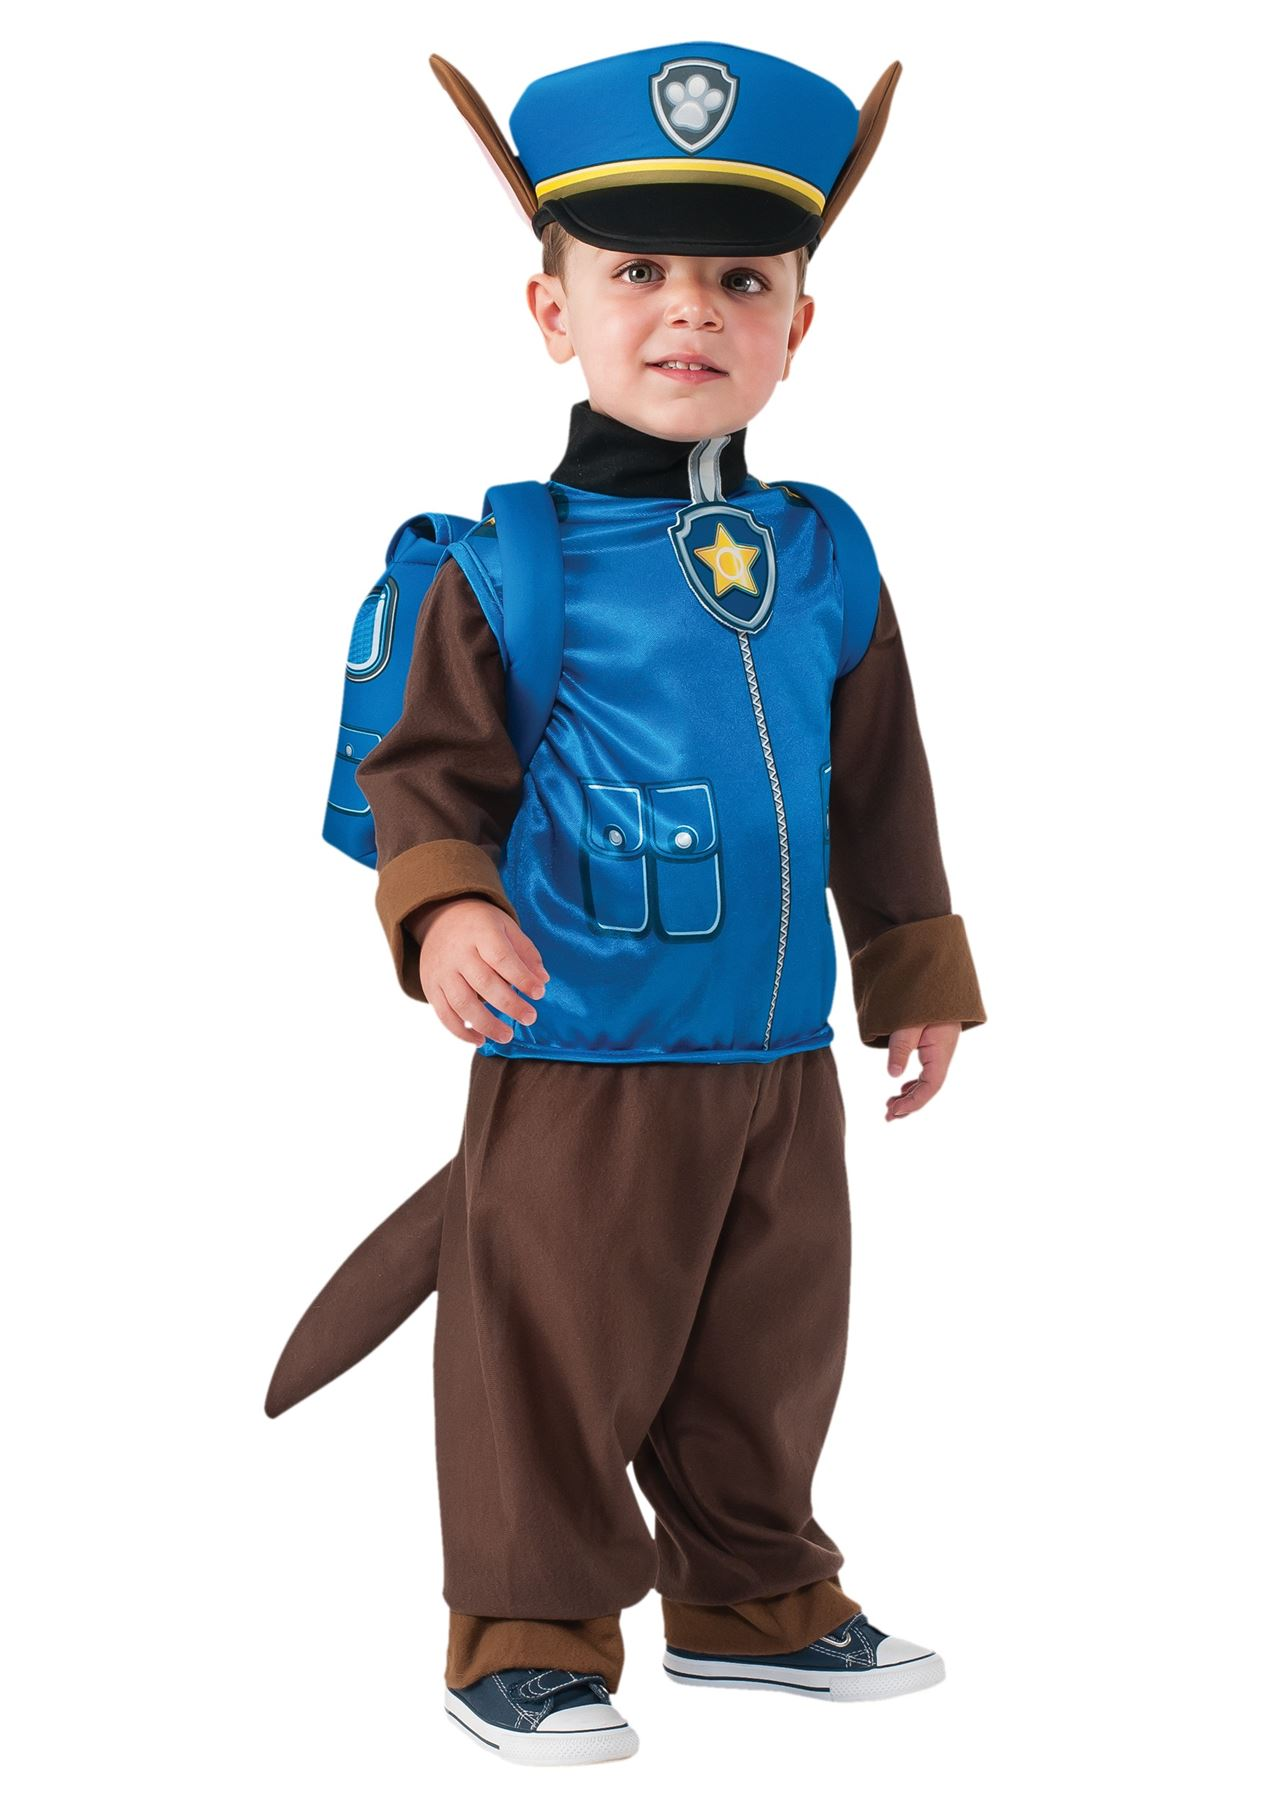 If your little boy is Harry Potter mad or Angry Bird crazy, we've got the costume for him. We have boys fancy dress costumes to cover every movie and comic book obsession, from Star Wars to Batman, Willy Wonka to Spiderman, so your .